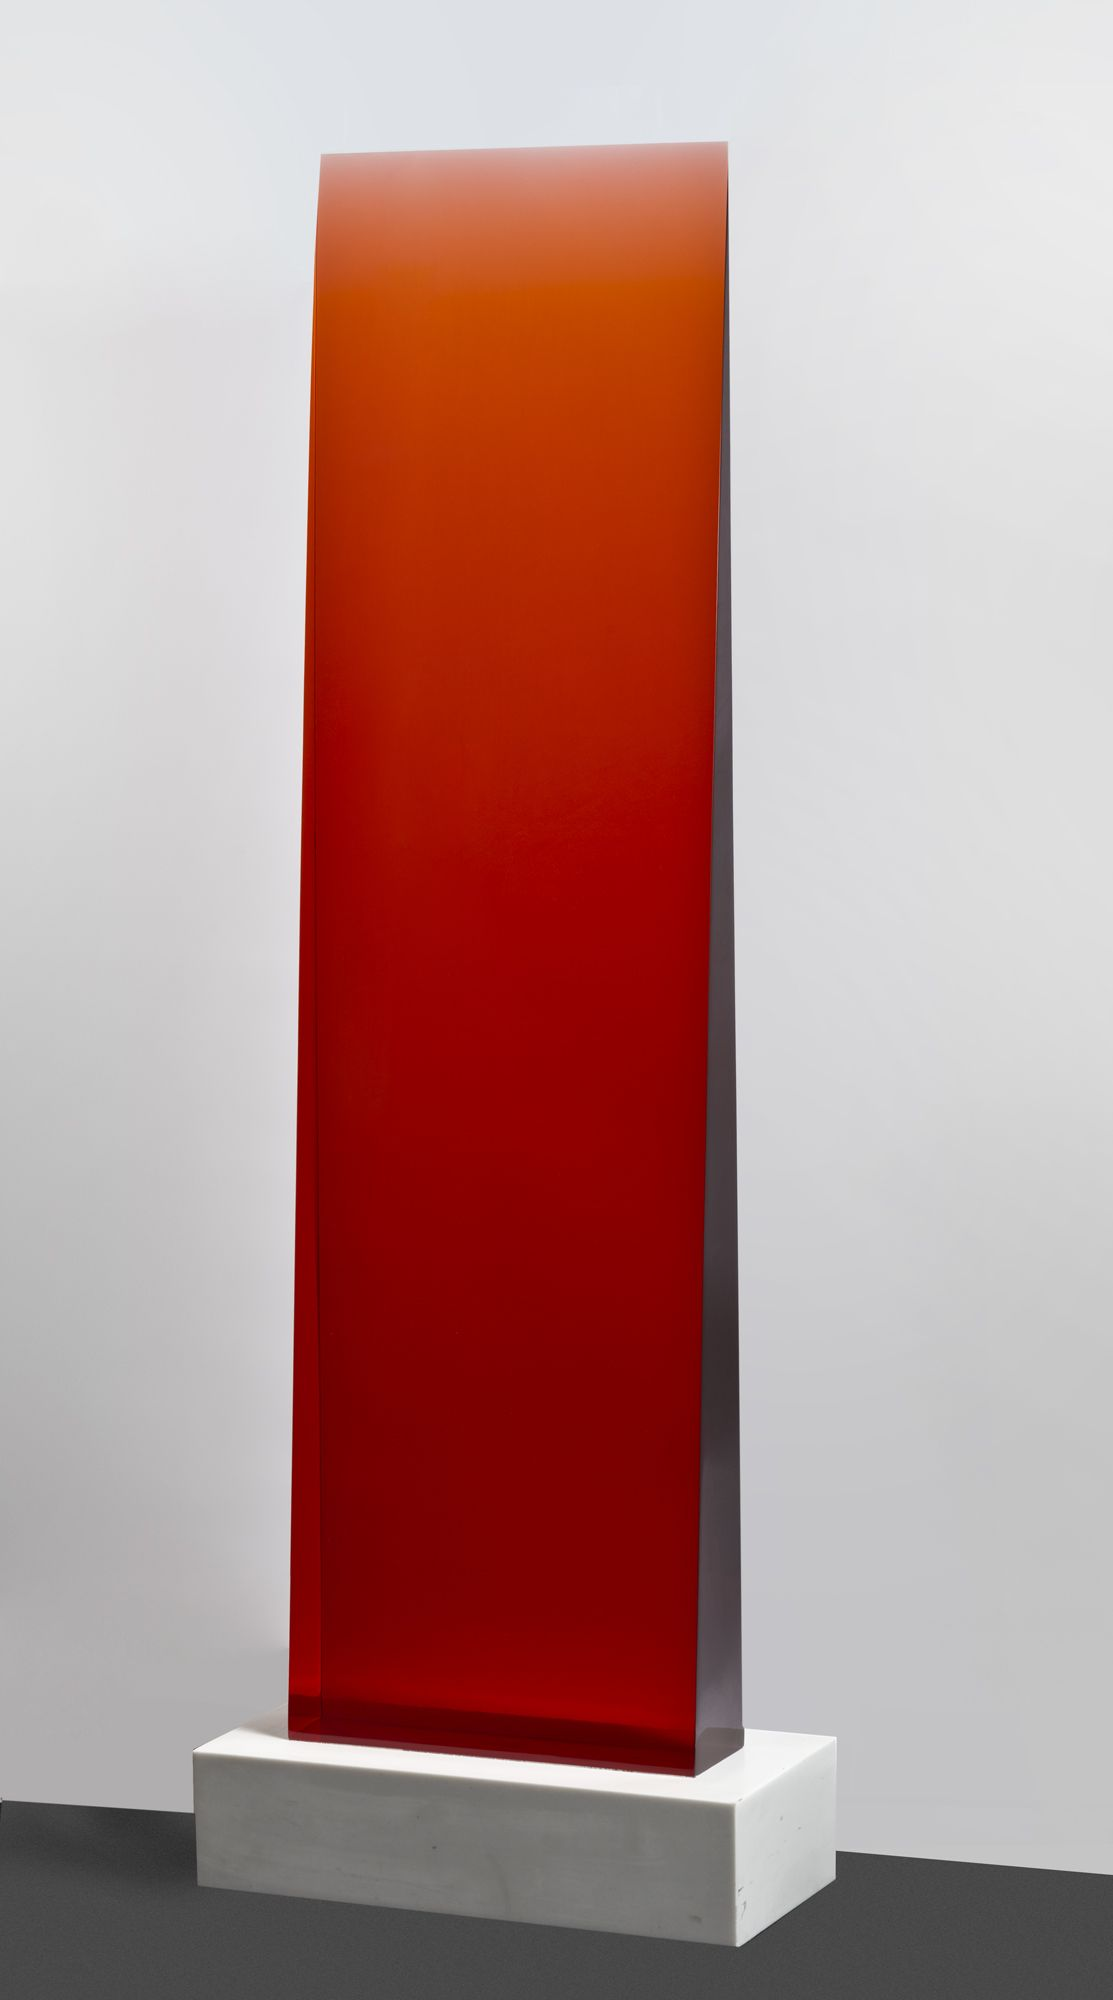 Red Bases For Living Room Decor: Red Gradient Filter Wedge Cast Polyurethane Resin Fused To